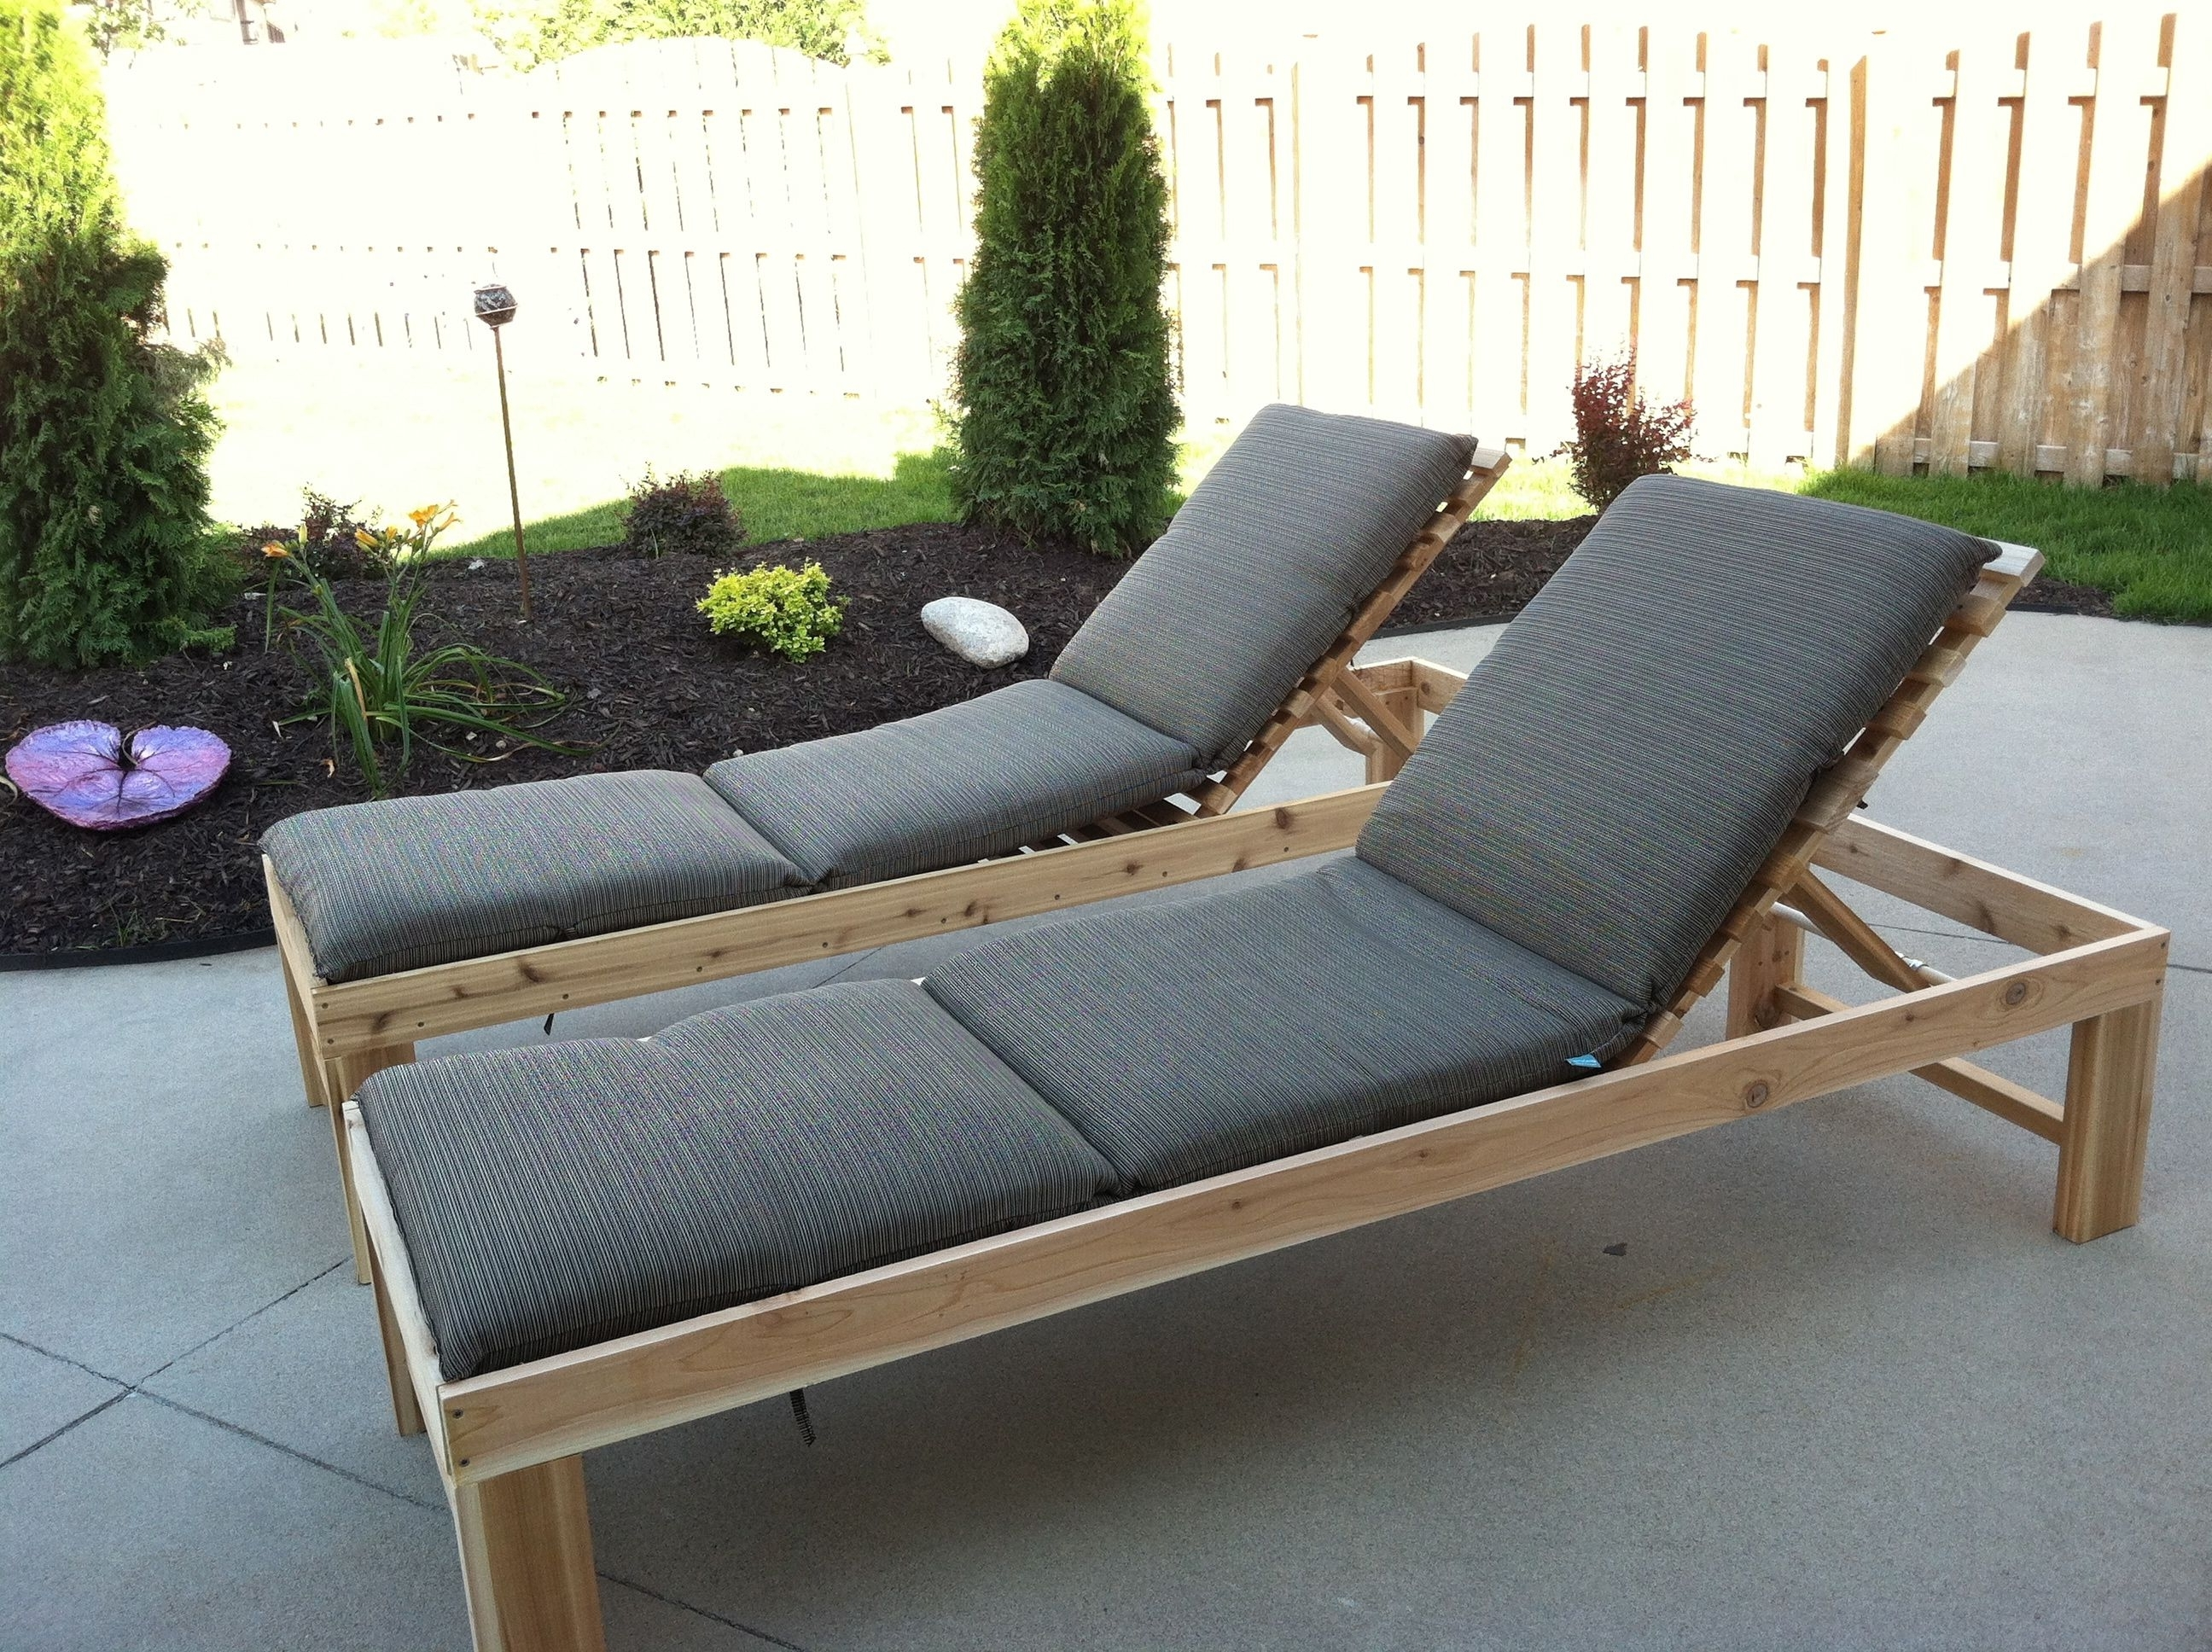 Outdoor Chaise Lounge – Diy Projects Within Latest Outdoor Lounge Chaises (View 6 of 15)